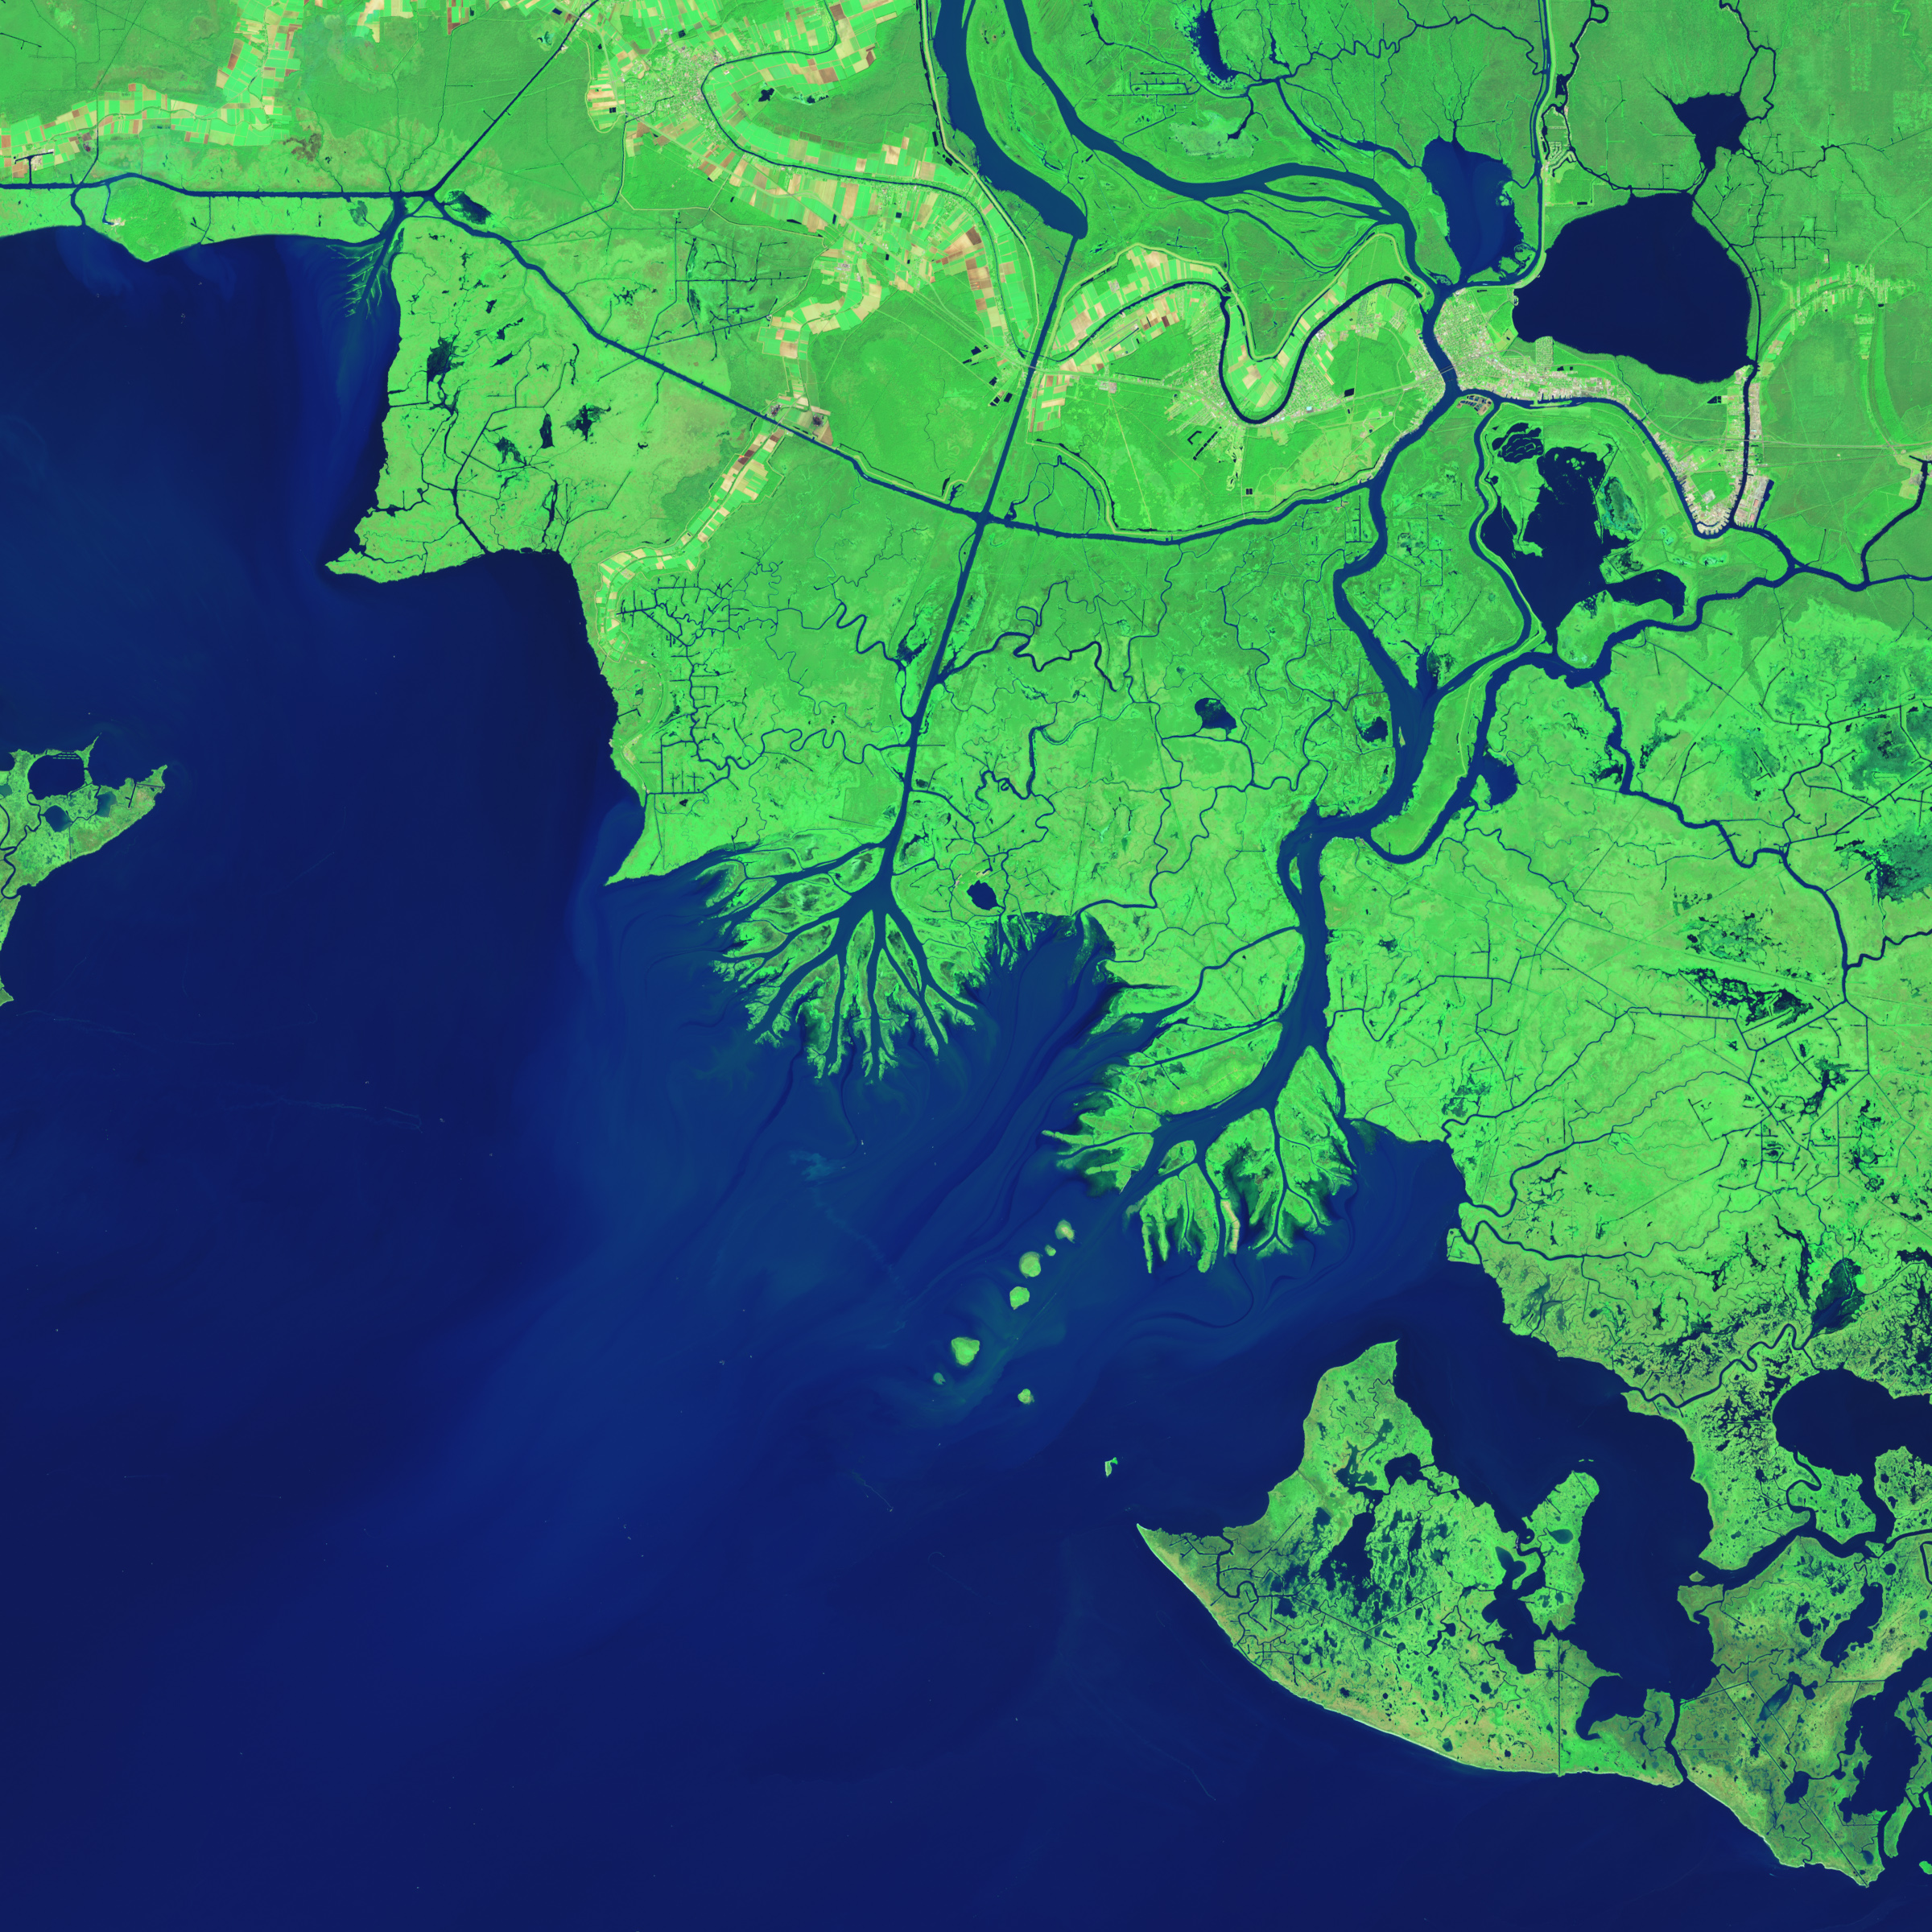 New Land On The Louisiana Coast Image Of The Day - World satellite map 2014